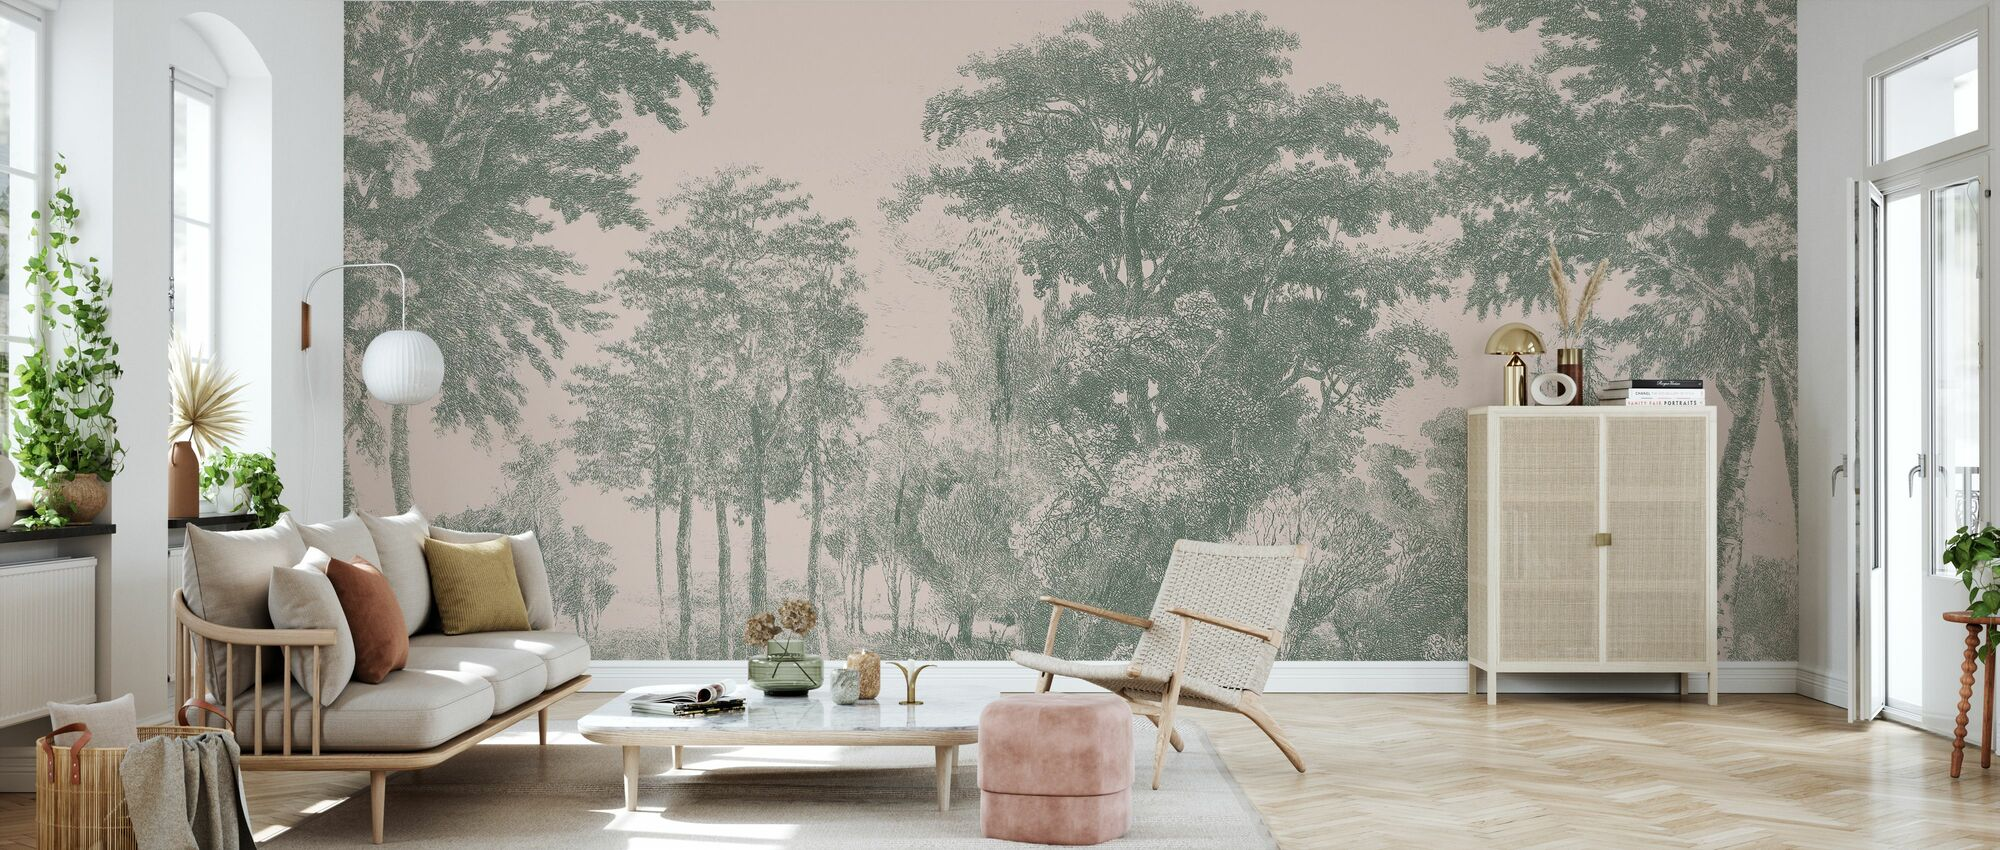 Slow Meander - Pink and Green - Wallpaper - Living Room